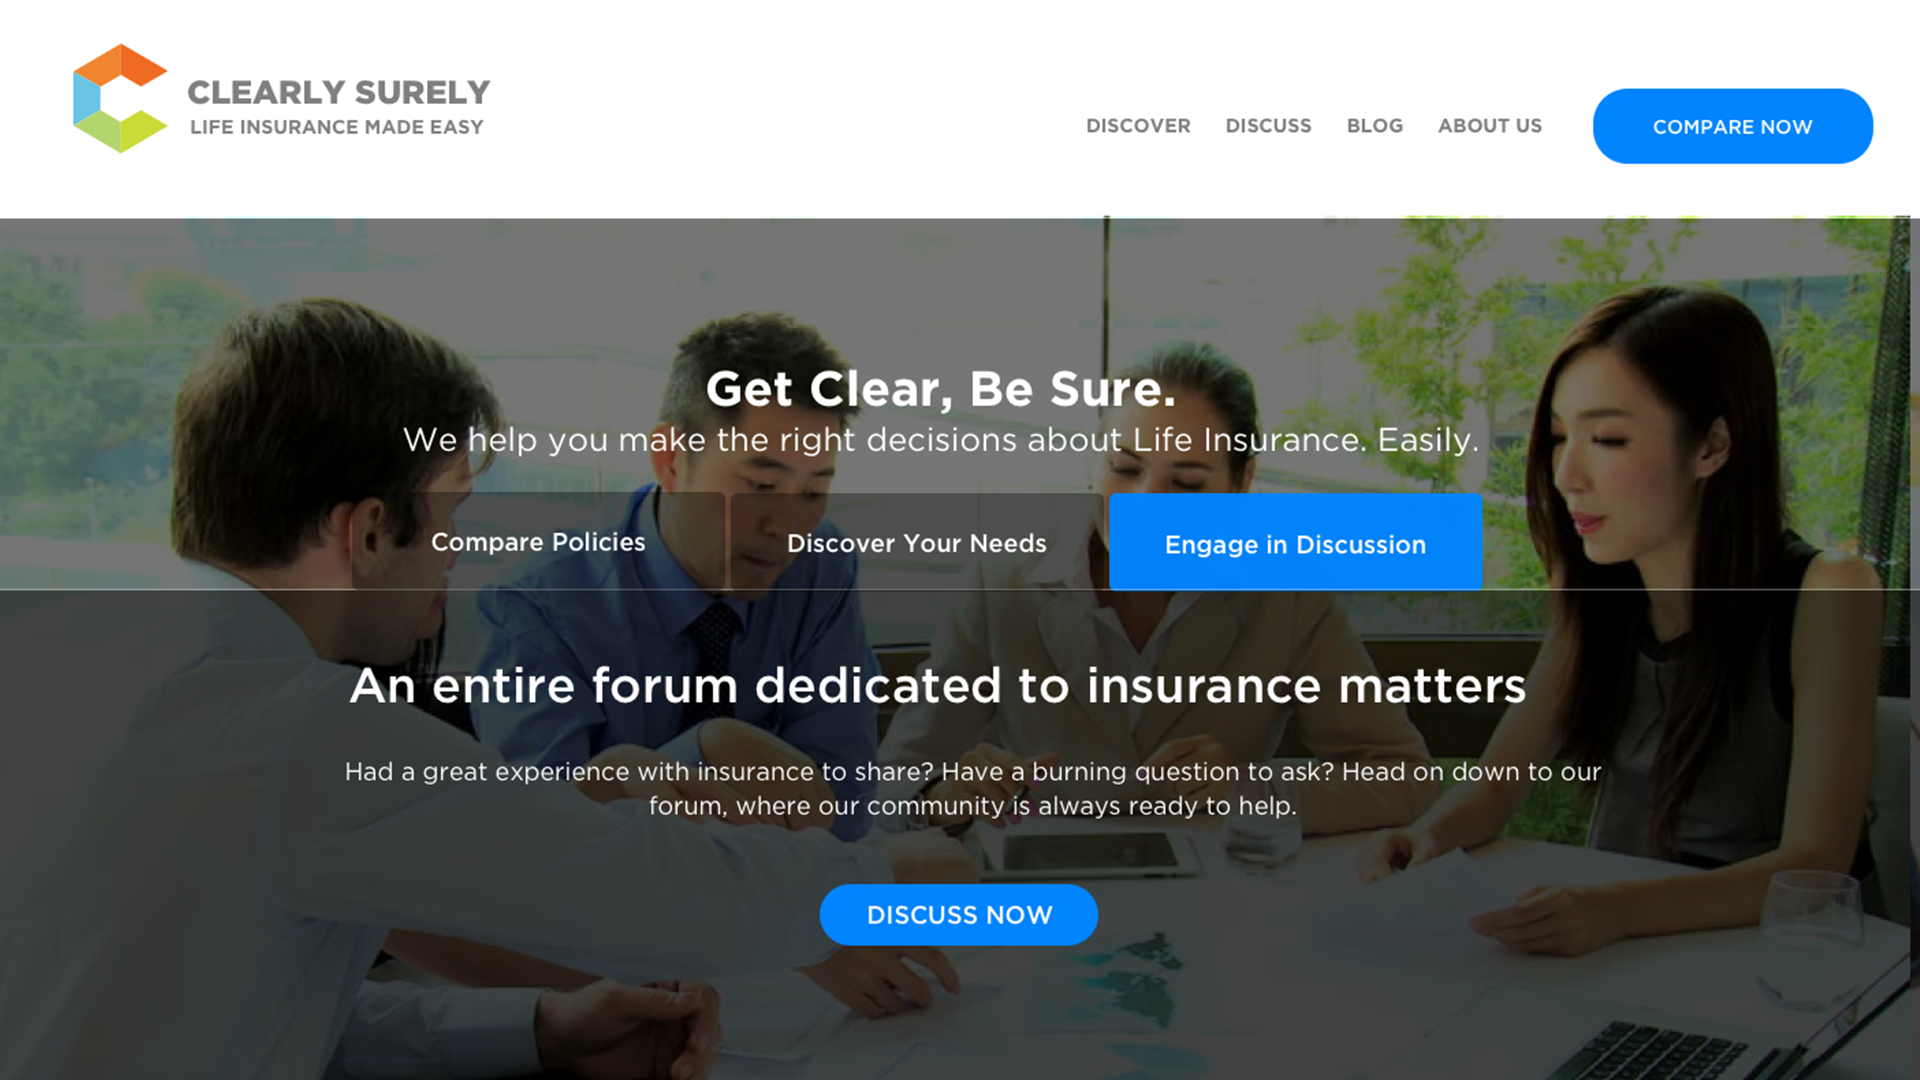 UX UI Design for Clearly Surely, an Insurance Site